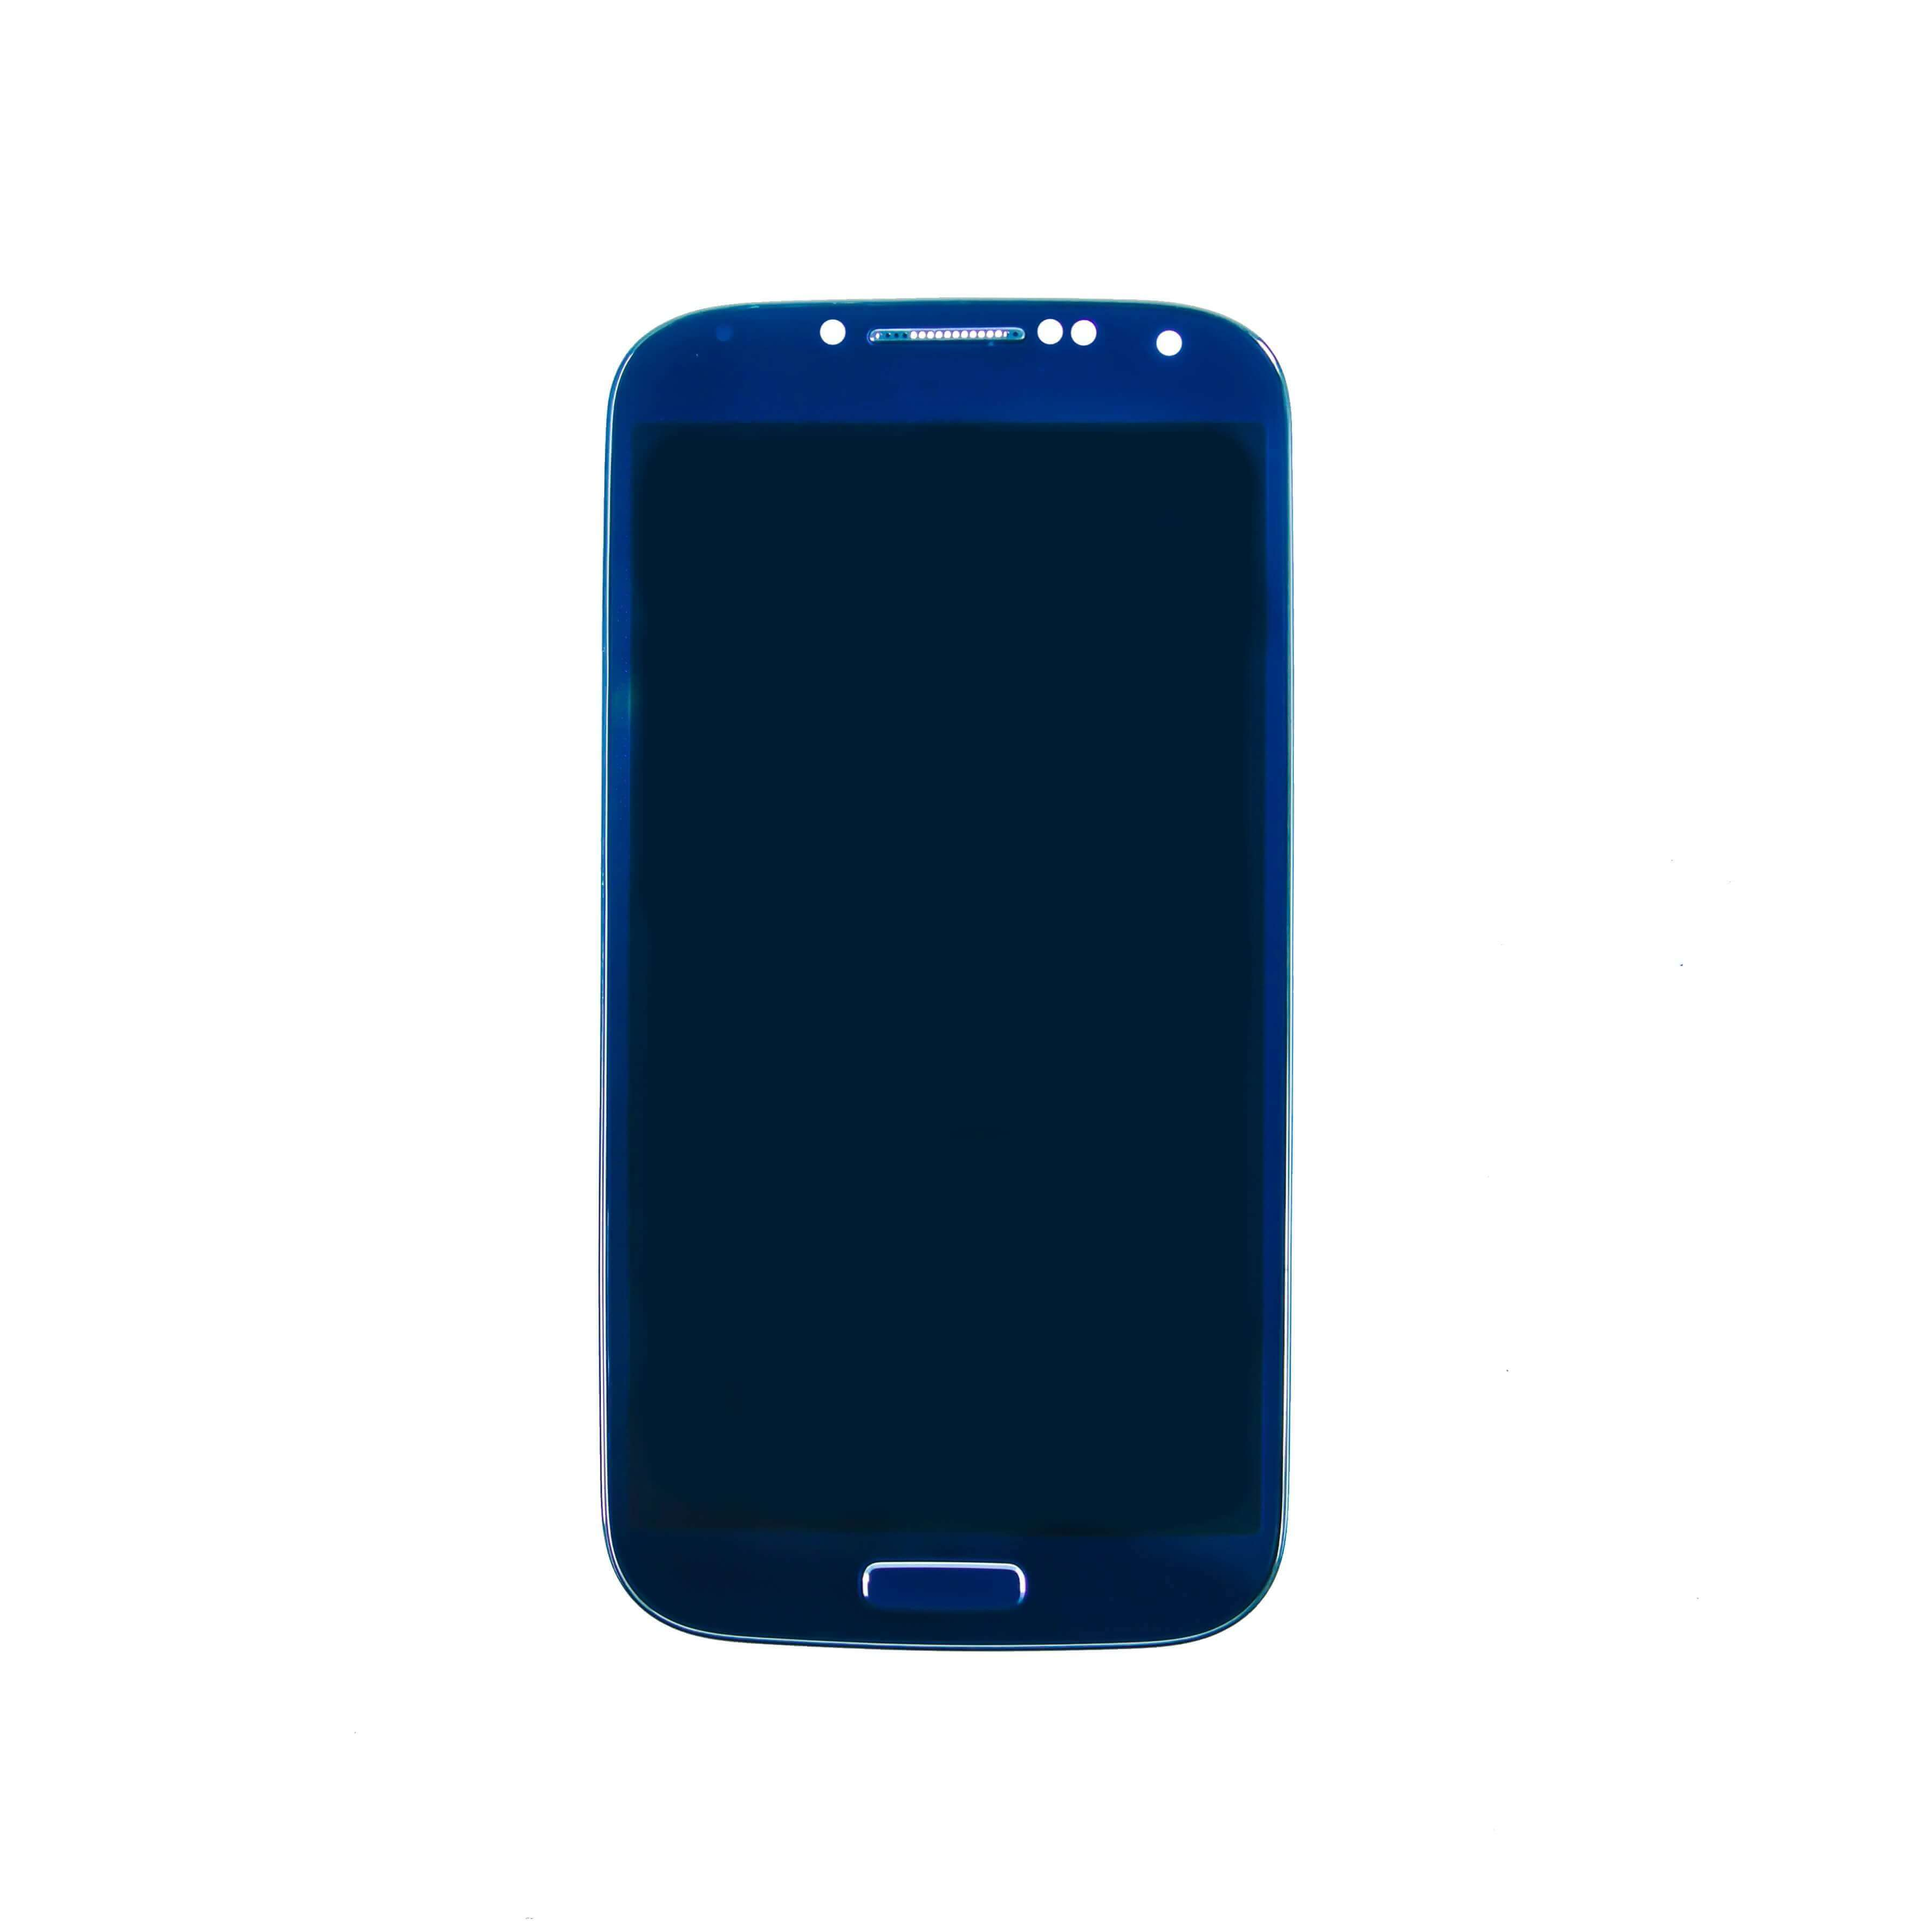 LCD & Digitizer Assembly for use with Samsung Galaxy S4 SCH-i545, Arctic  Blue, with Frame (Sprint/Verizon)